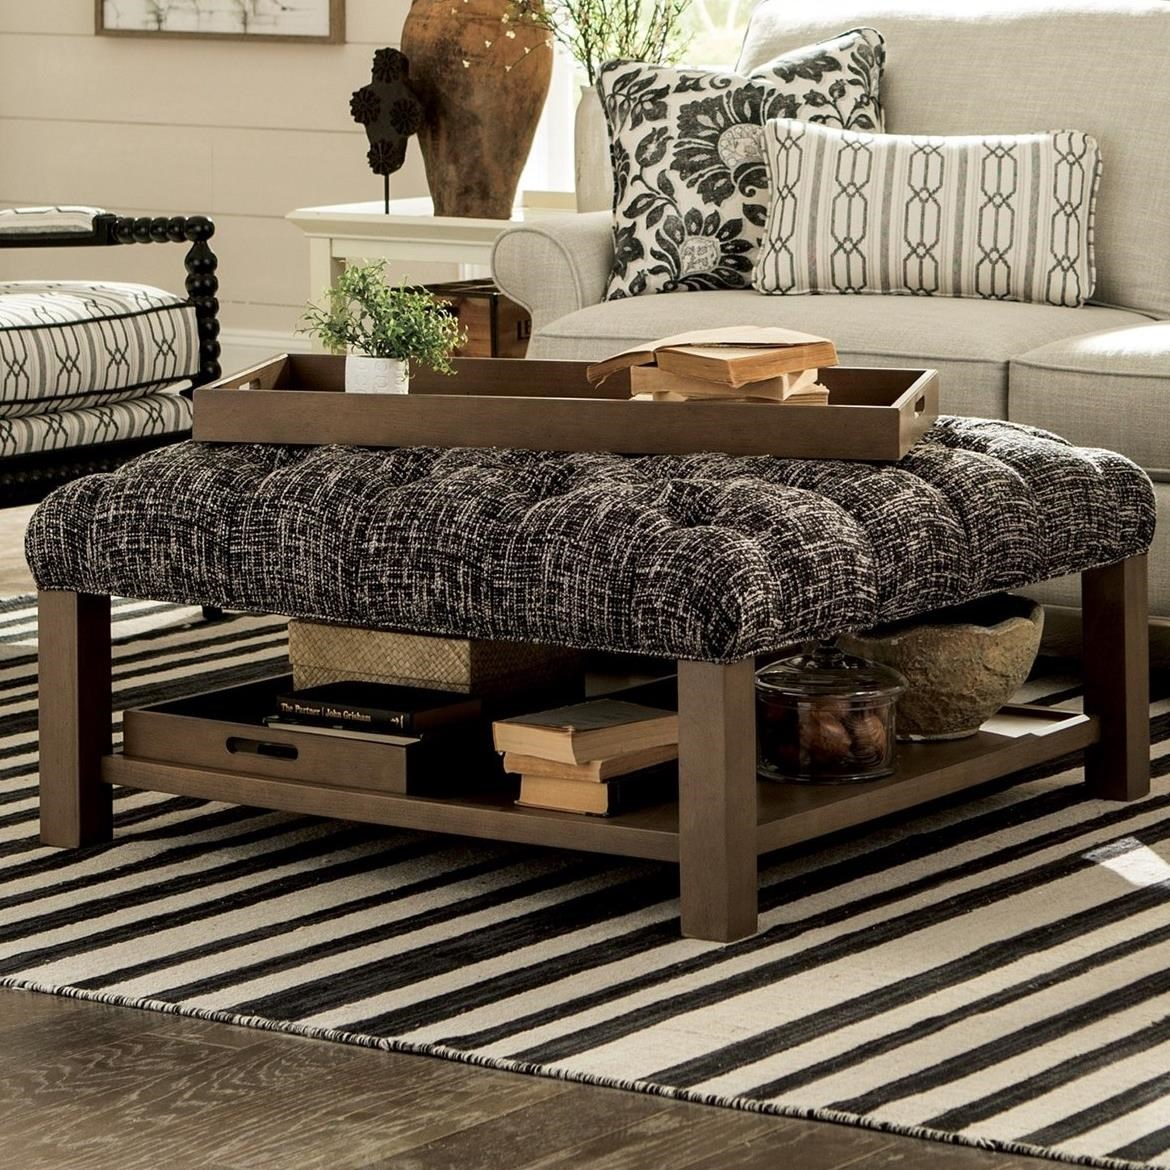 Enjoyable Hickorycraft Accent Ottomans Cocktail Ottoman With Button Gmtry Best Dining Table And Chair Ideas Images Gmtryco